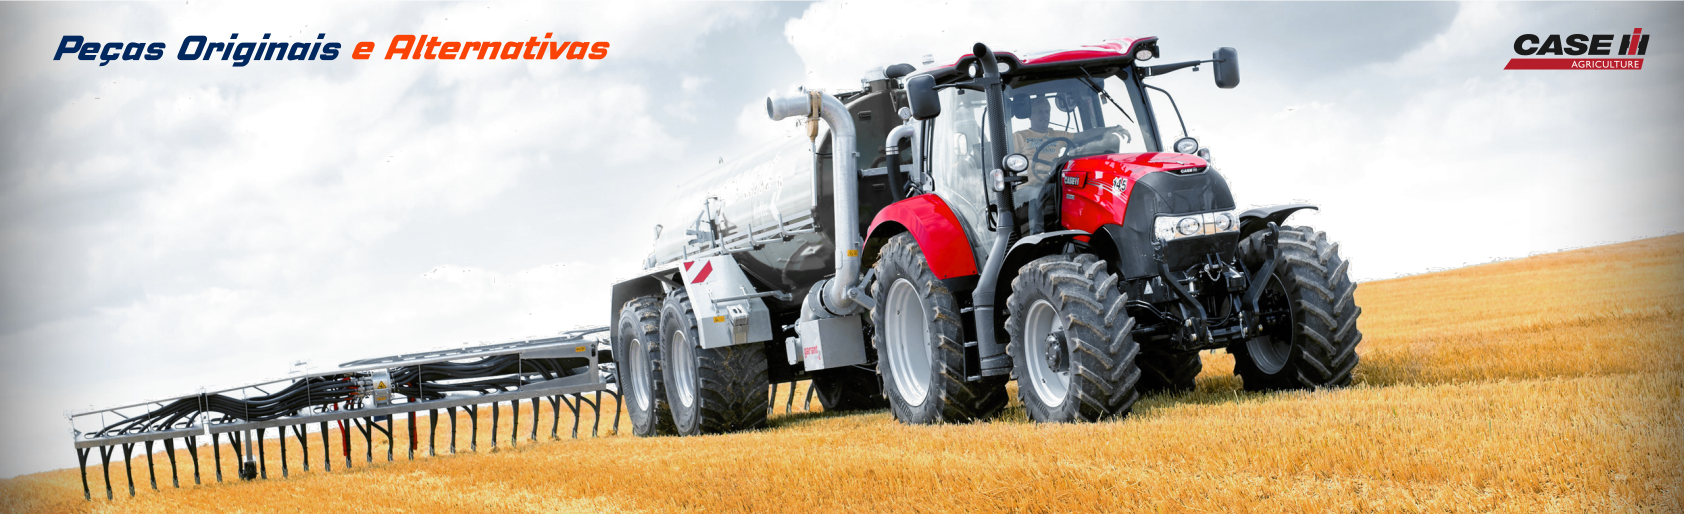 Tratores CASE IH